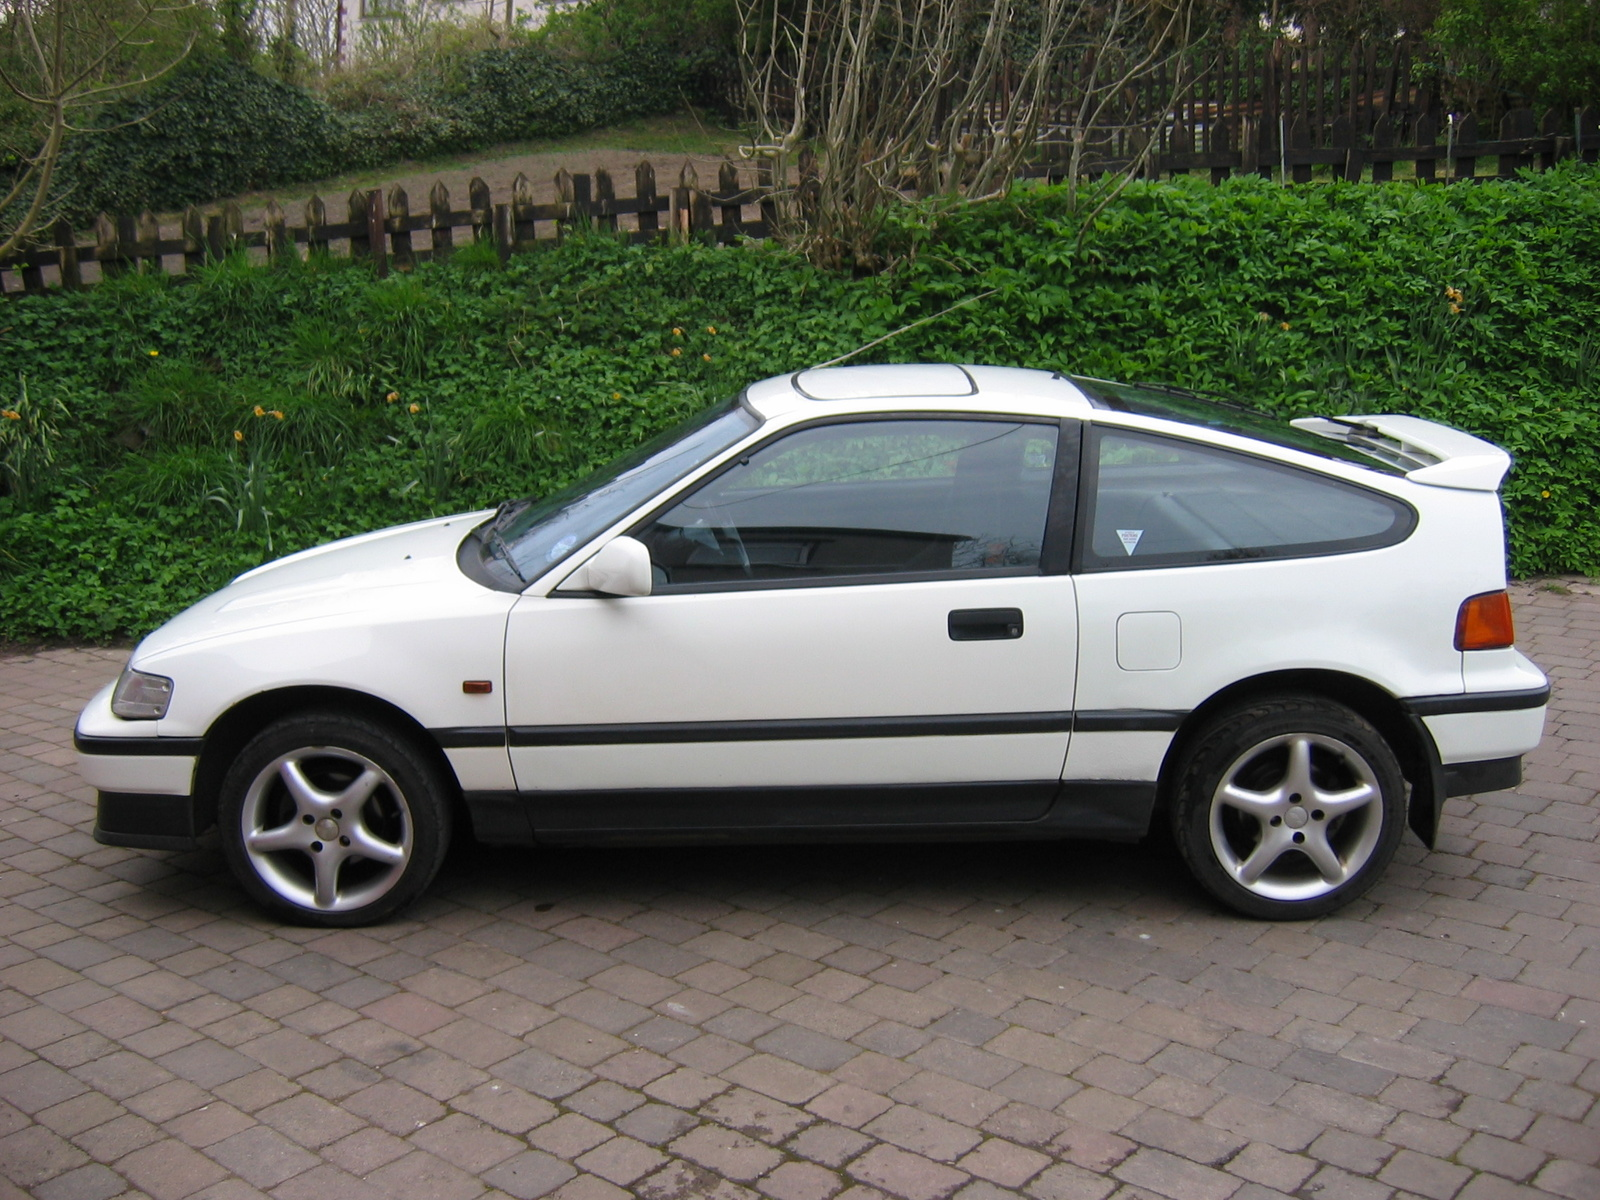 Pictures of honda civic hatchback v 1991 #8